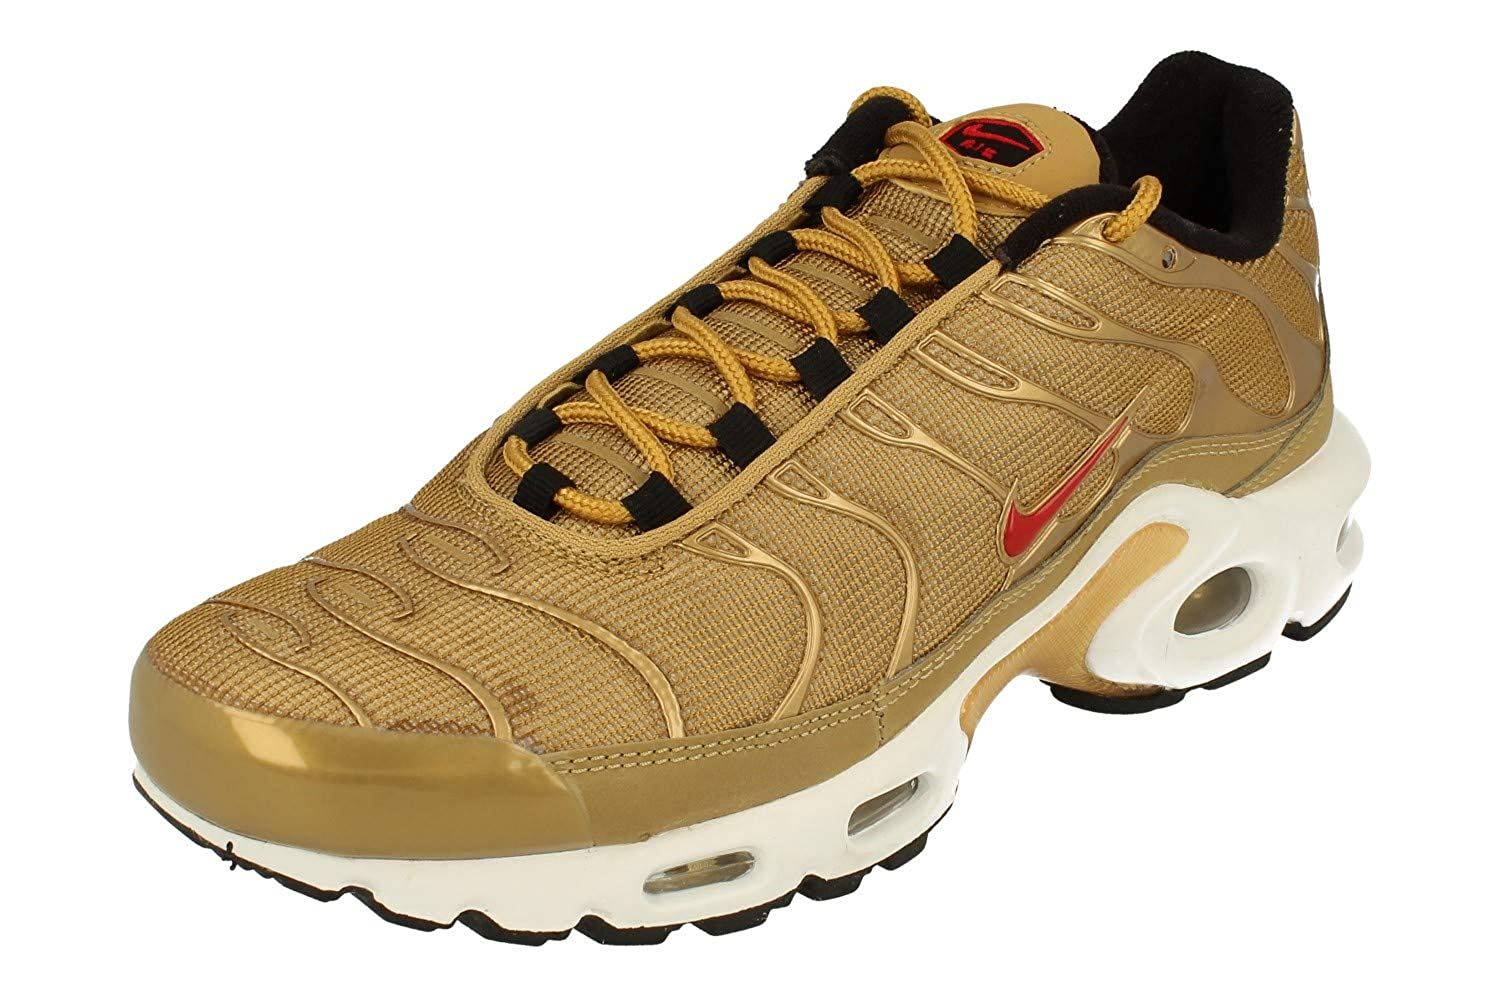 0ec7f4c146 Amazon.com | Nike Air Max Plus QS Mens Running Trainers 903827 Sneakers  Shoes | Athletic